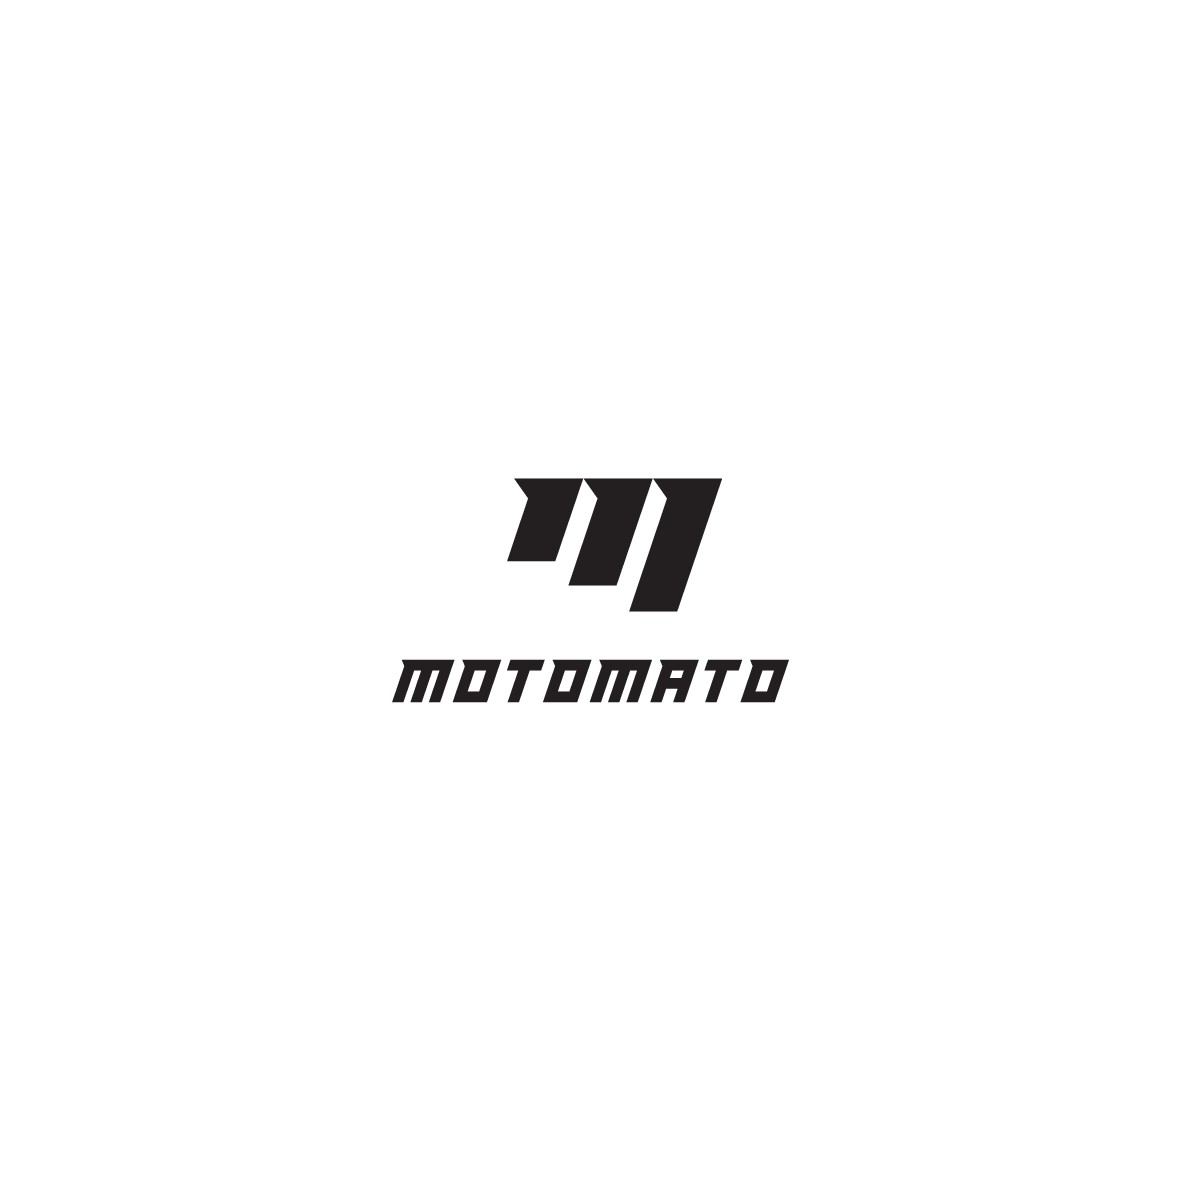 Stylish and minimal logo for an underdog motorcycle brand